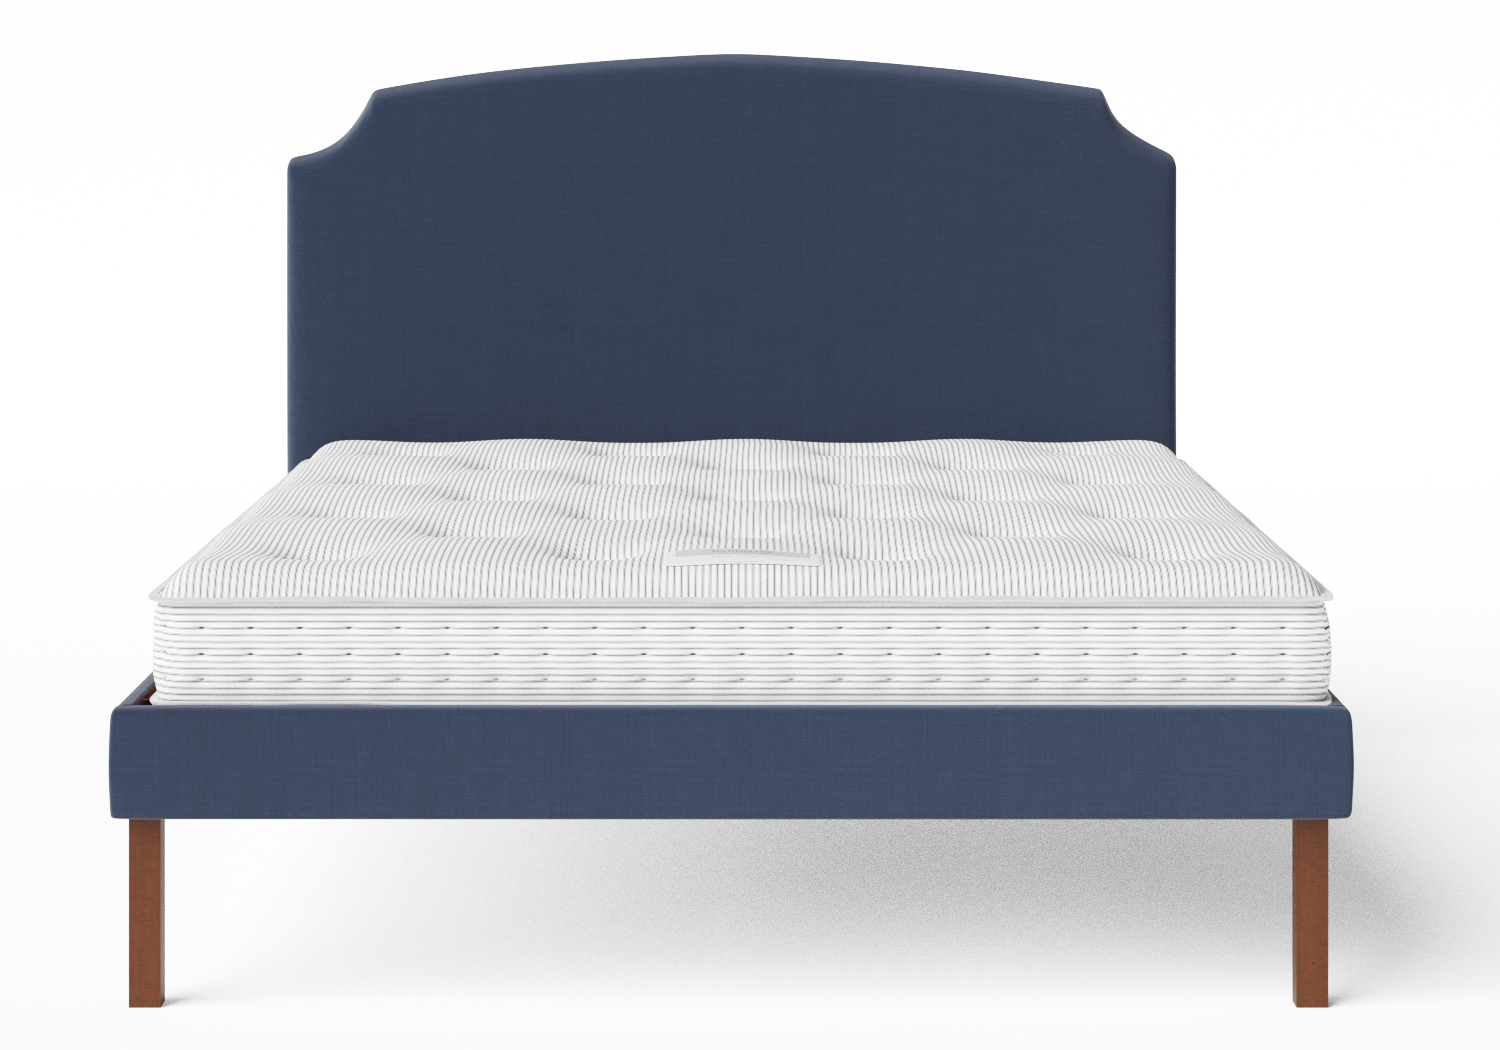 Kobe Upholstered Bed in Navy fabric shown with Juno 1 mattress